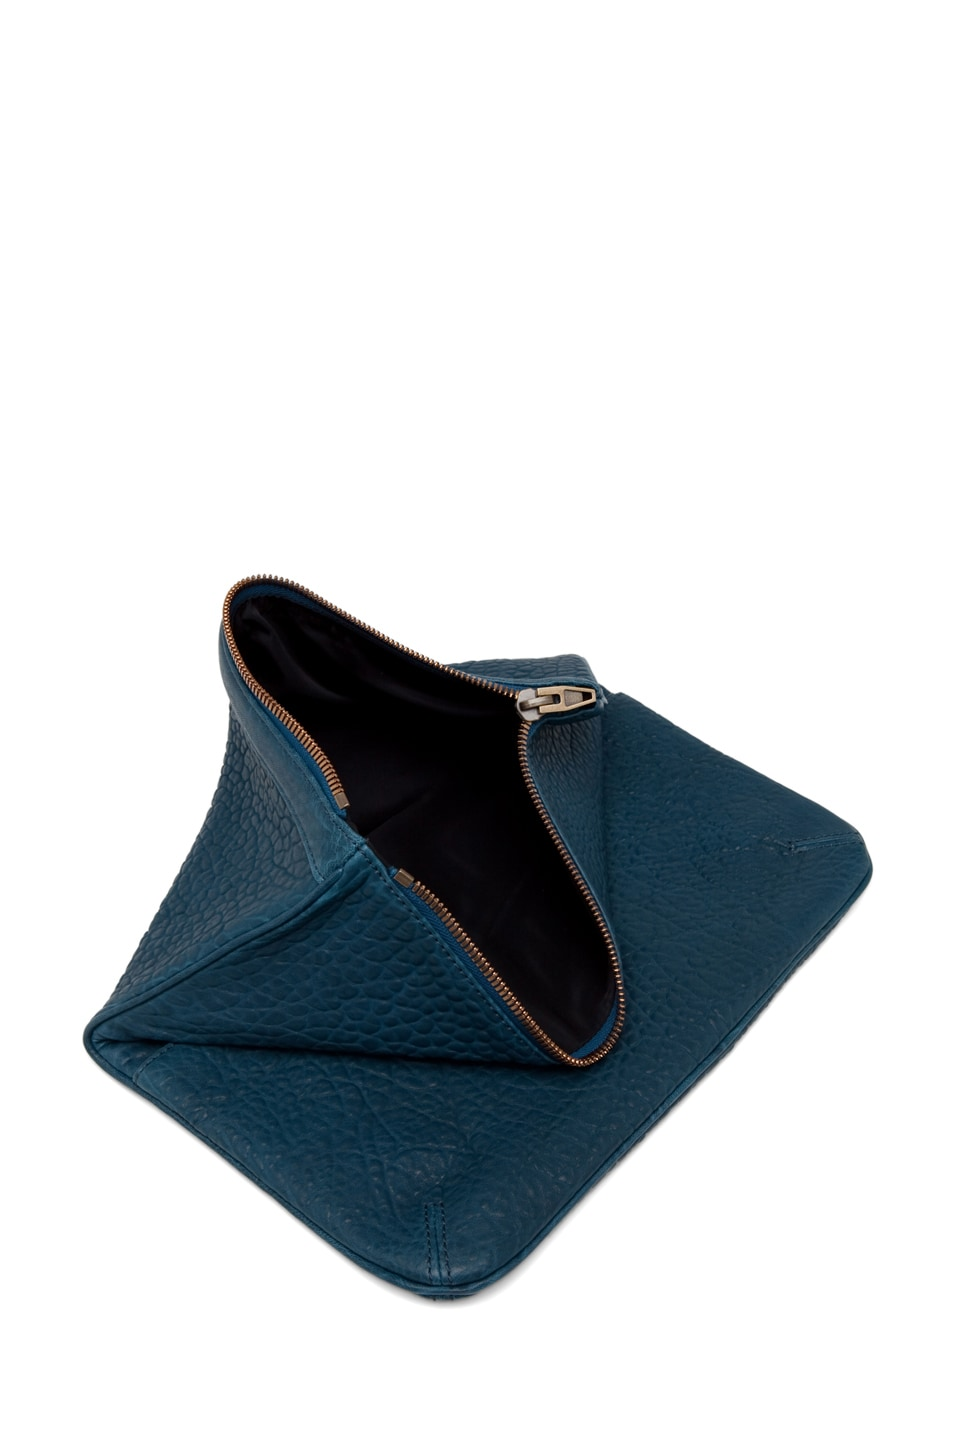 Image 5 of Alexander Wang Dumbo Soft Clutch in Petrol